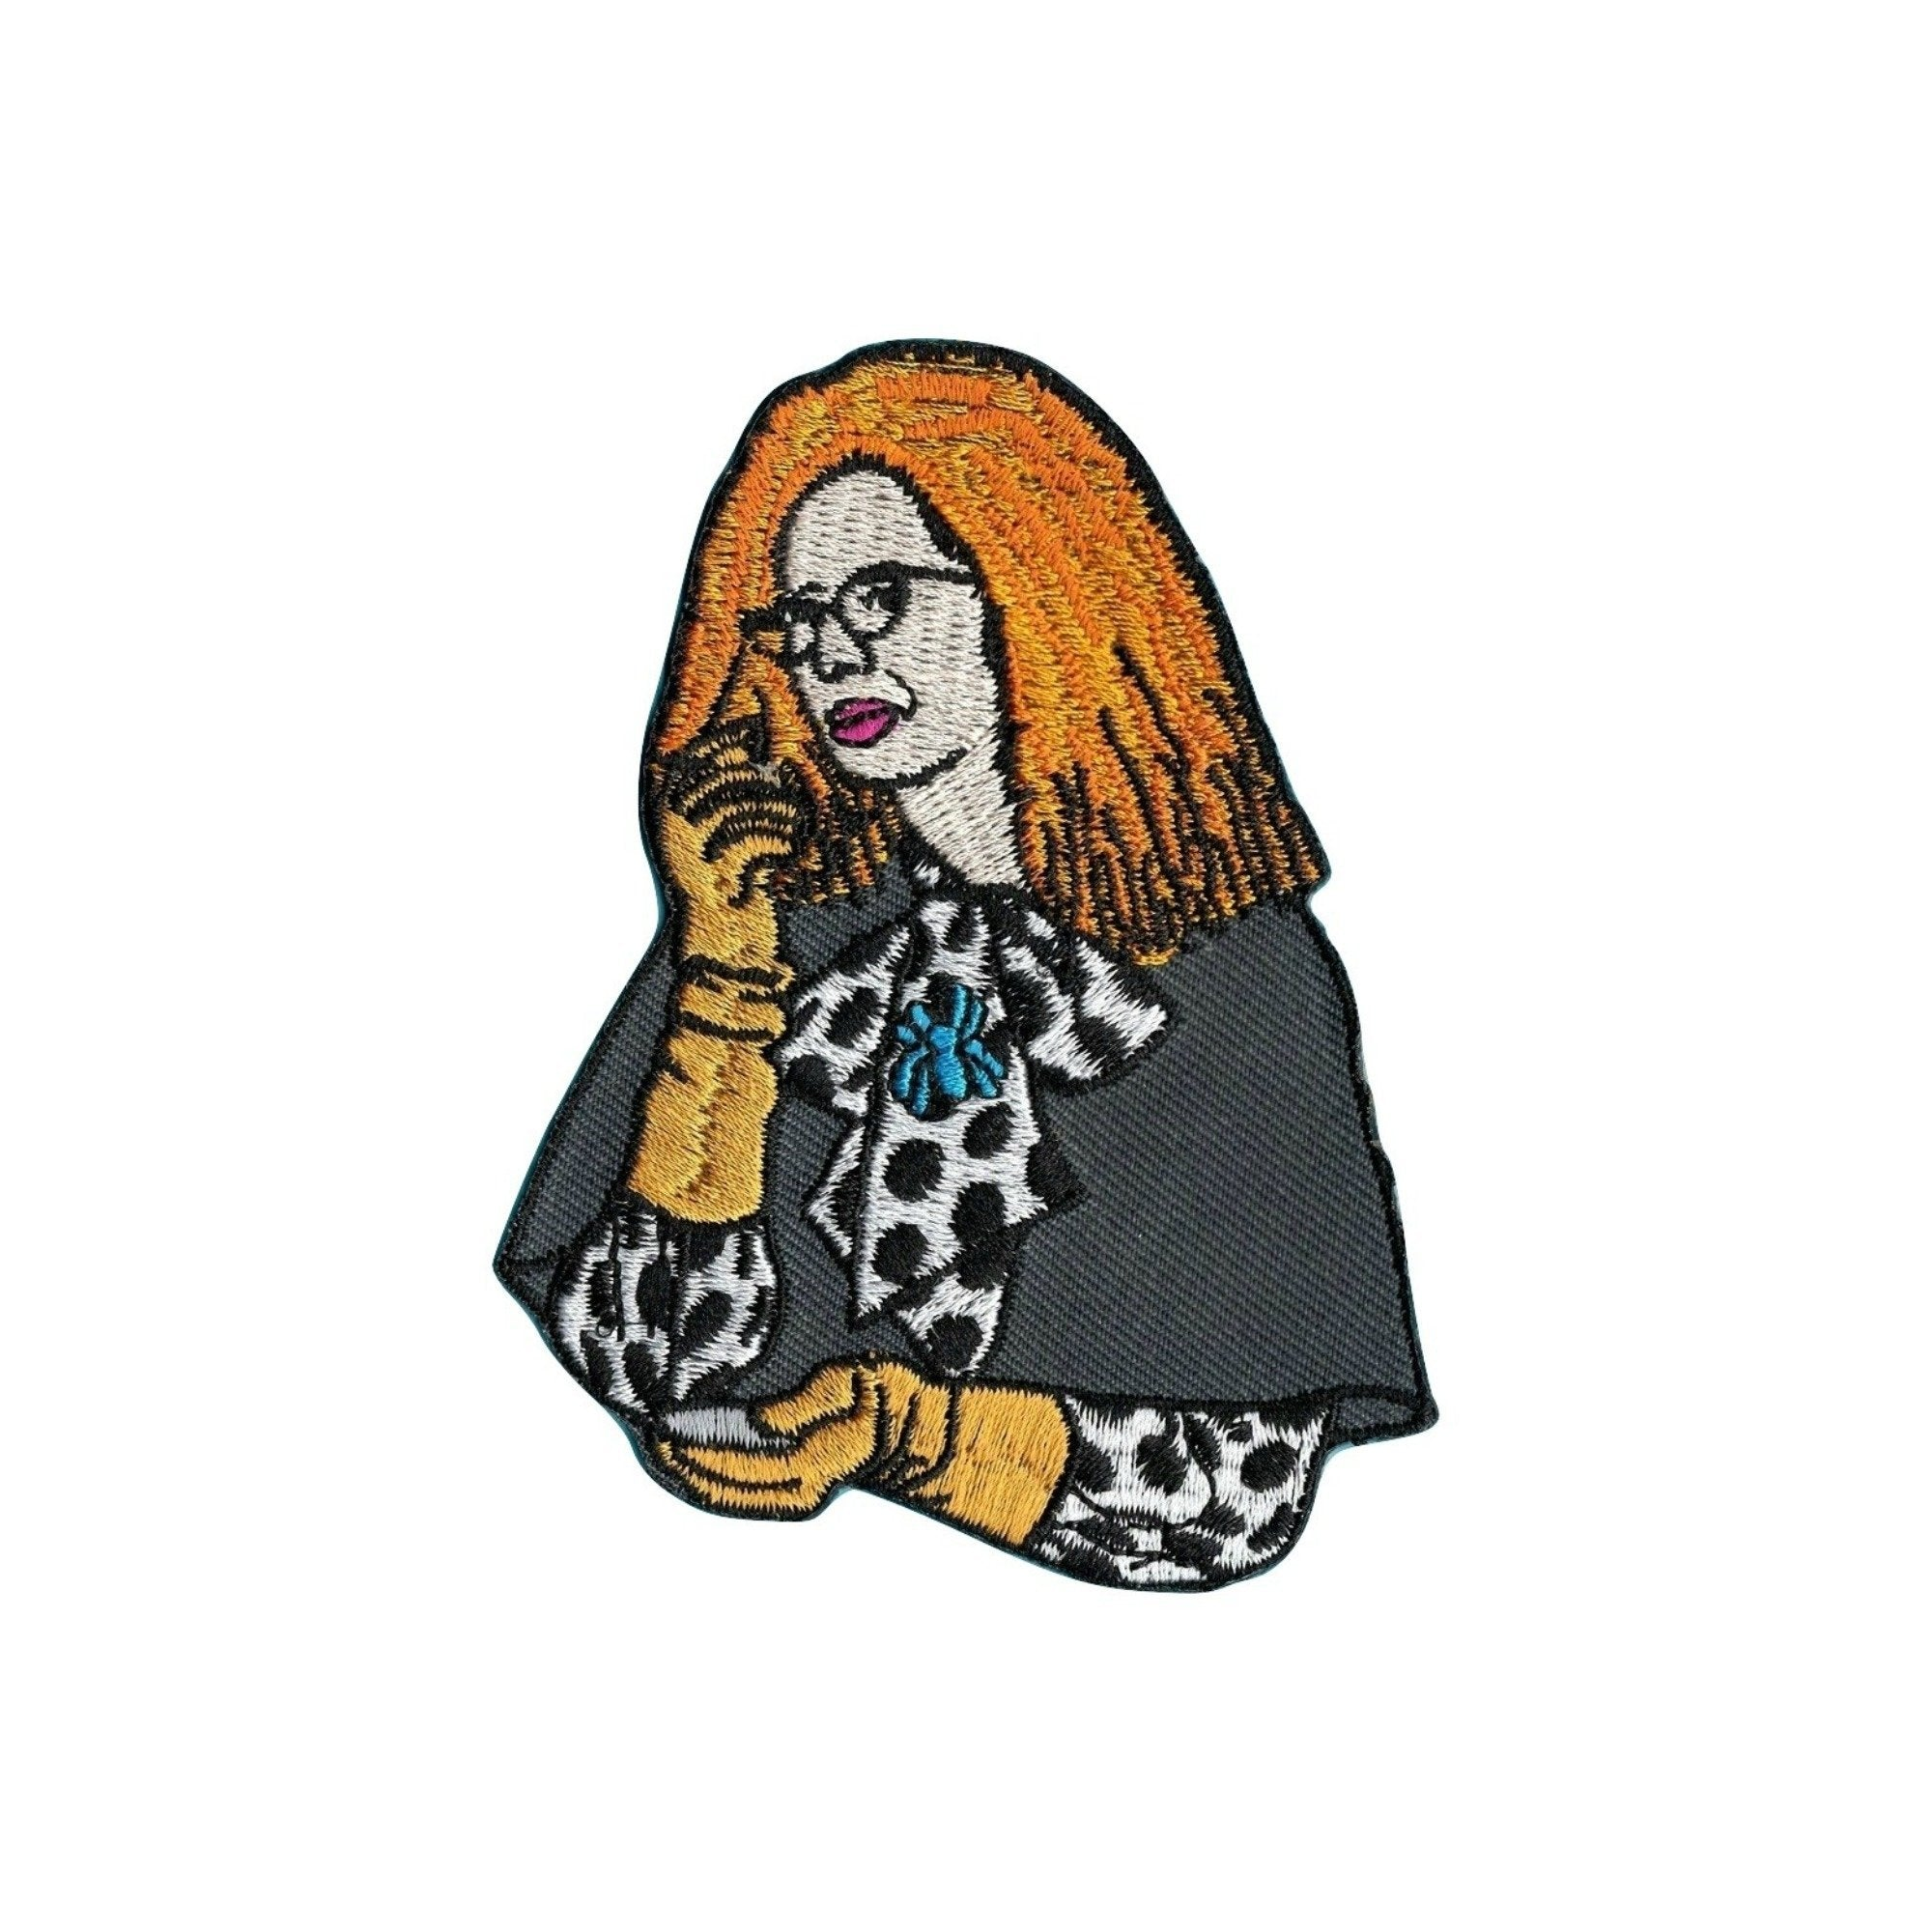 Myrtle Snow Iron On Patch - Minimum Mouse